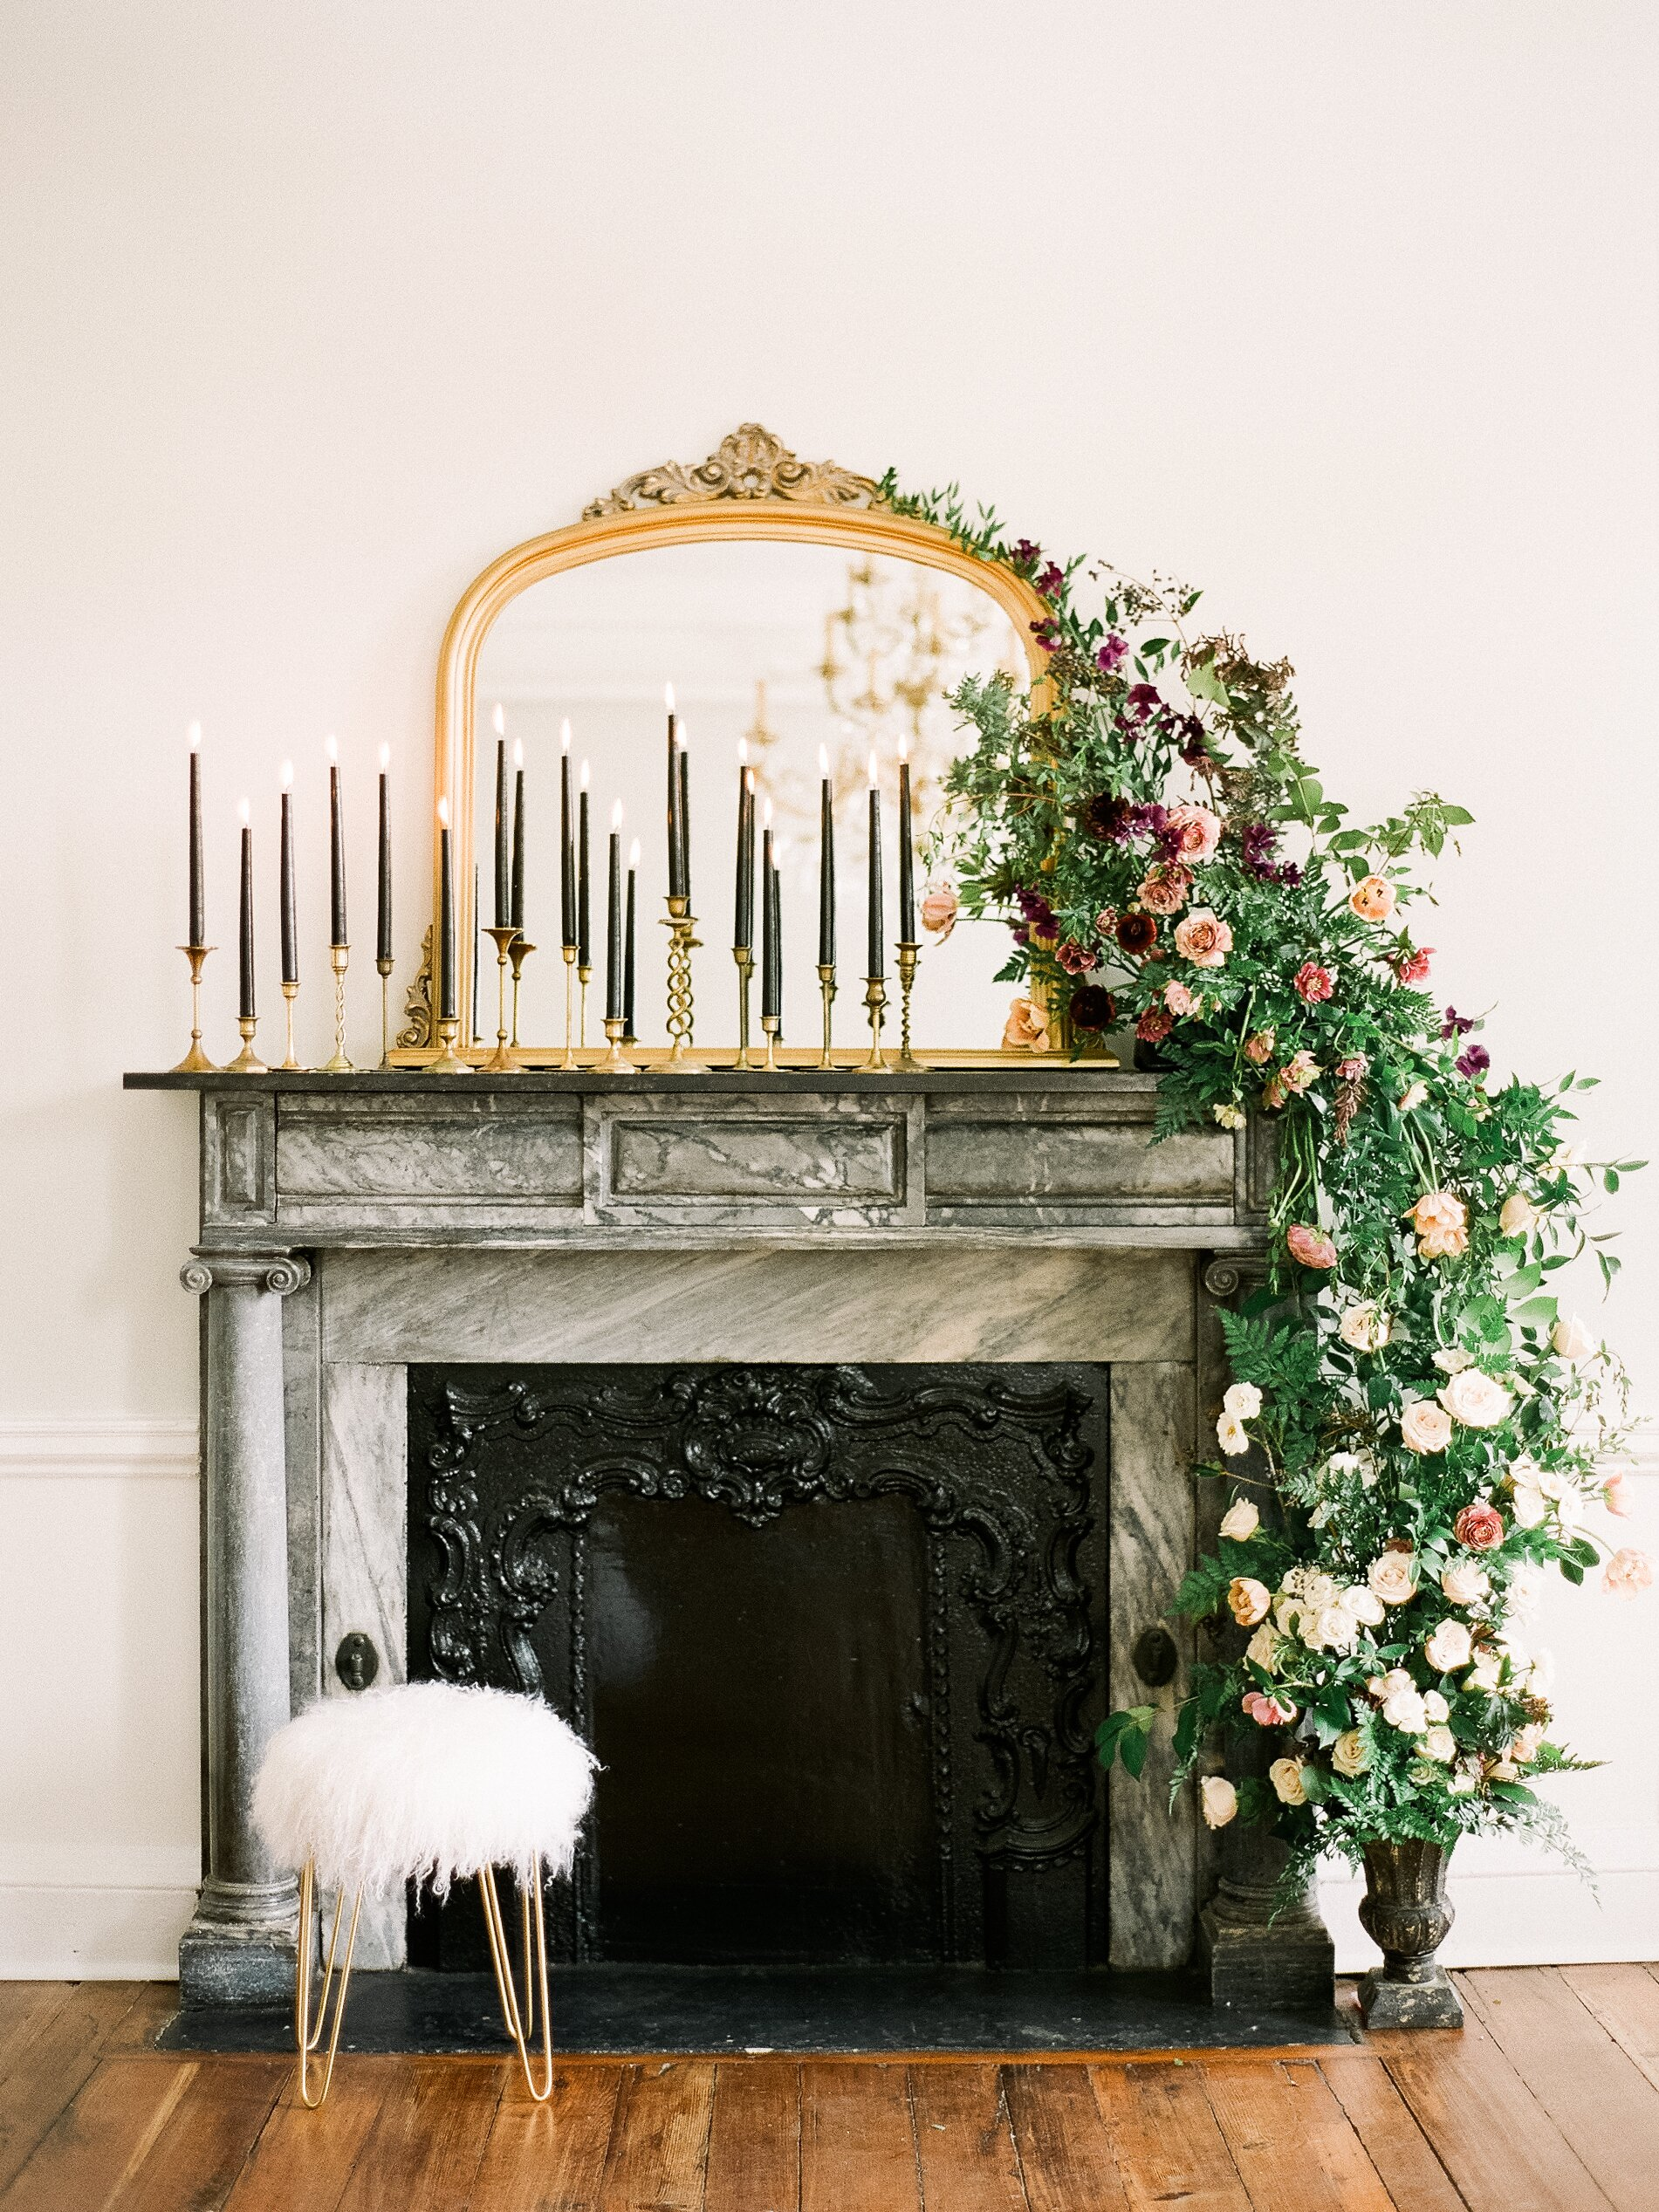 Trending Now: Mantel and Fireplace Ceremony Backdrops ...